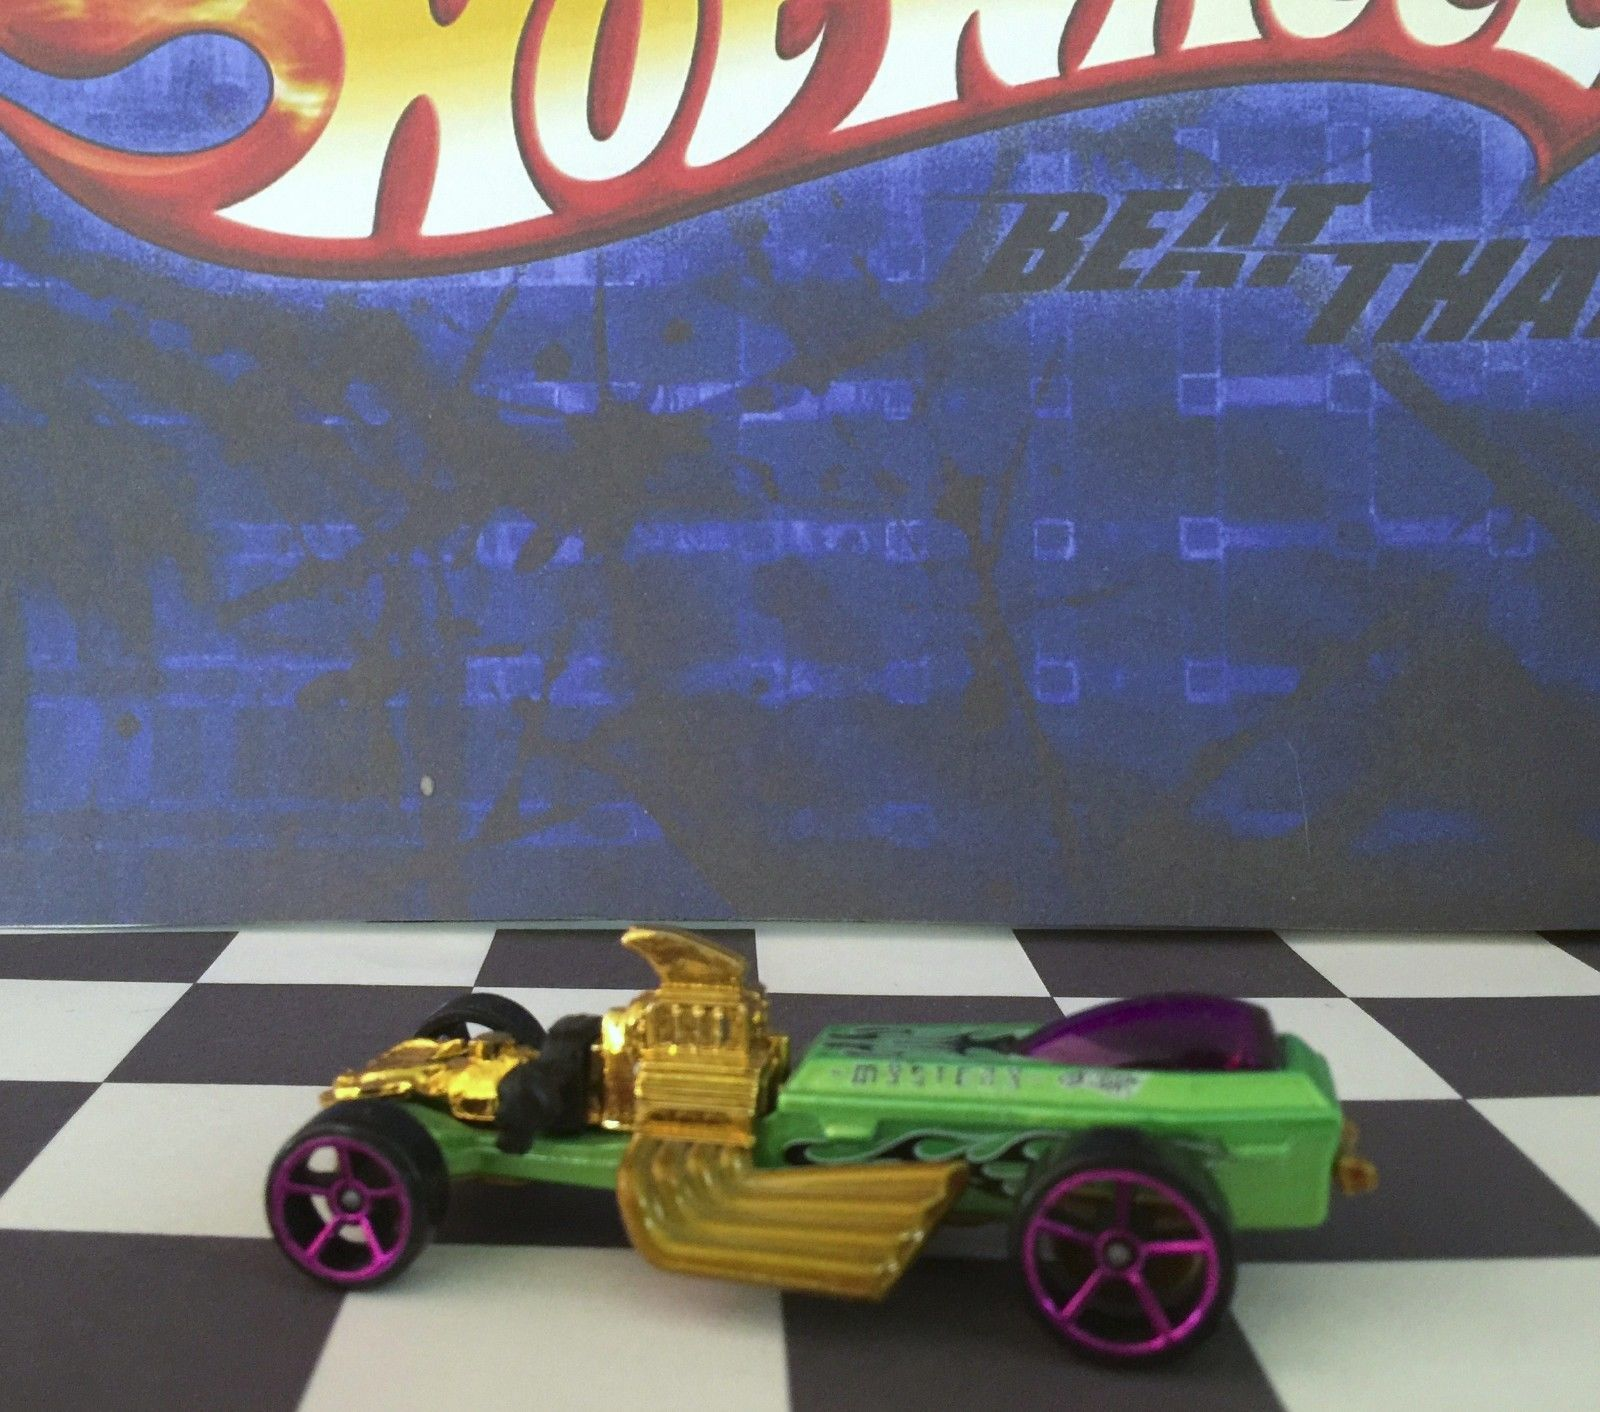 Hot Wheels 2010 Mystery Car 221 Rigor Motor Green o5/pink